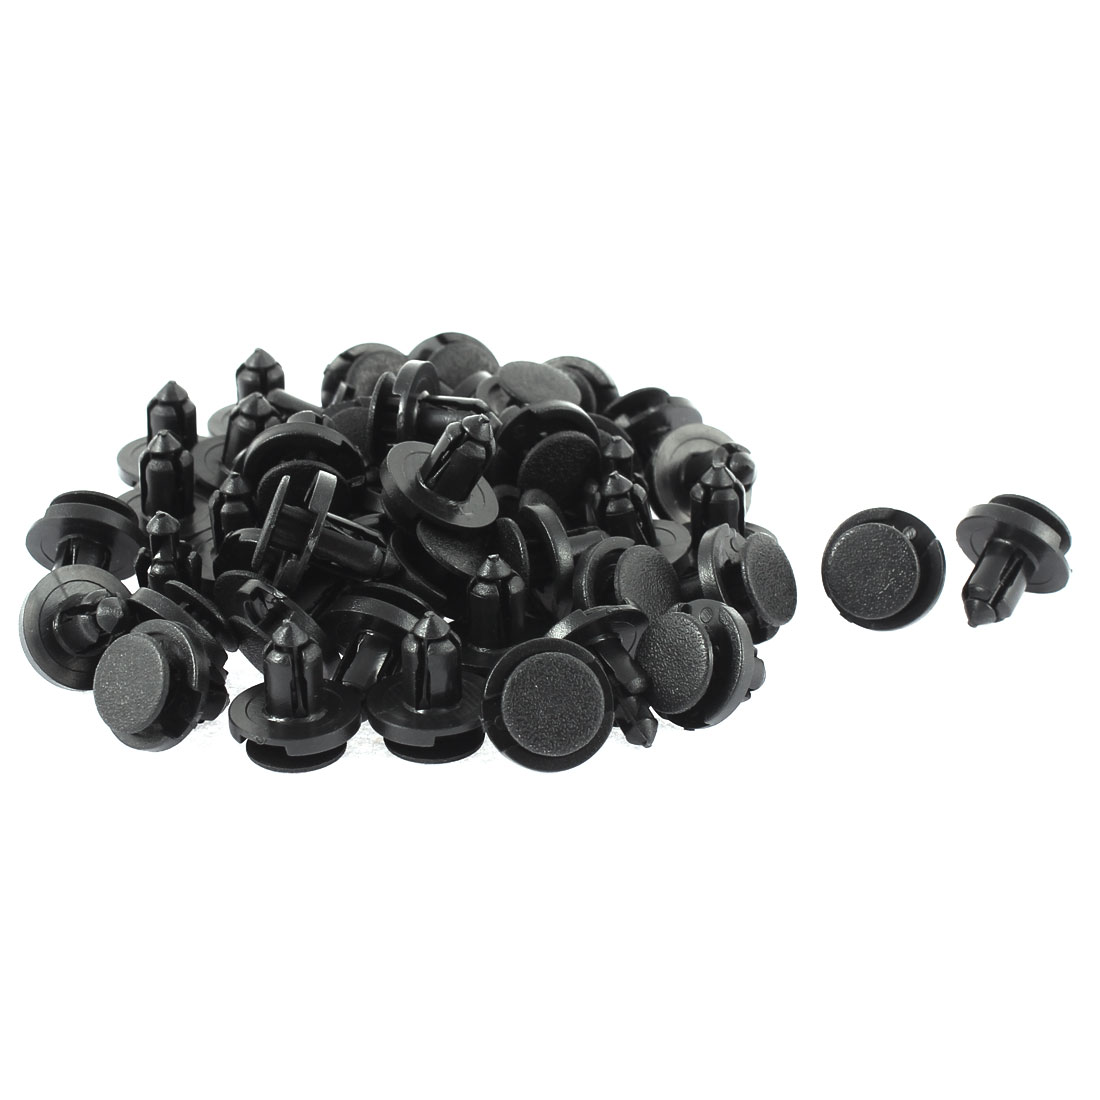 8mm x 18mm x 12mm Plastic Car Bumper Splash Guard Push Clips Rivets 50pcs